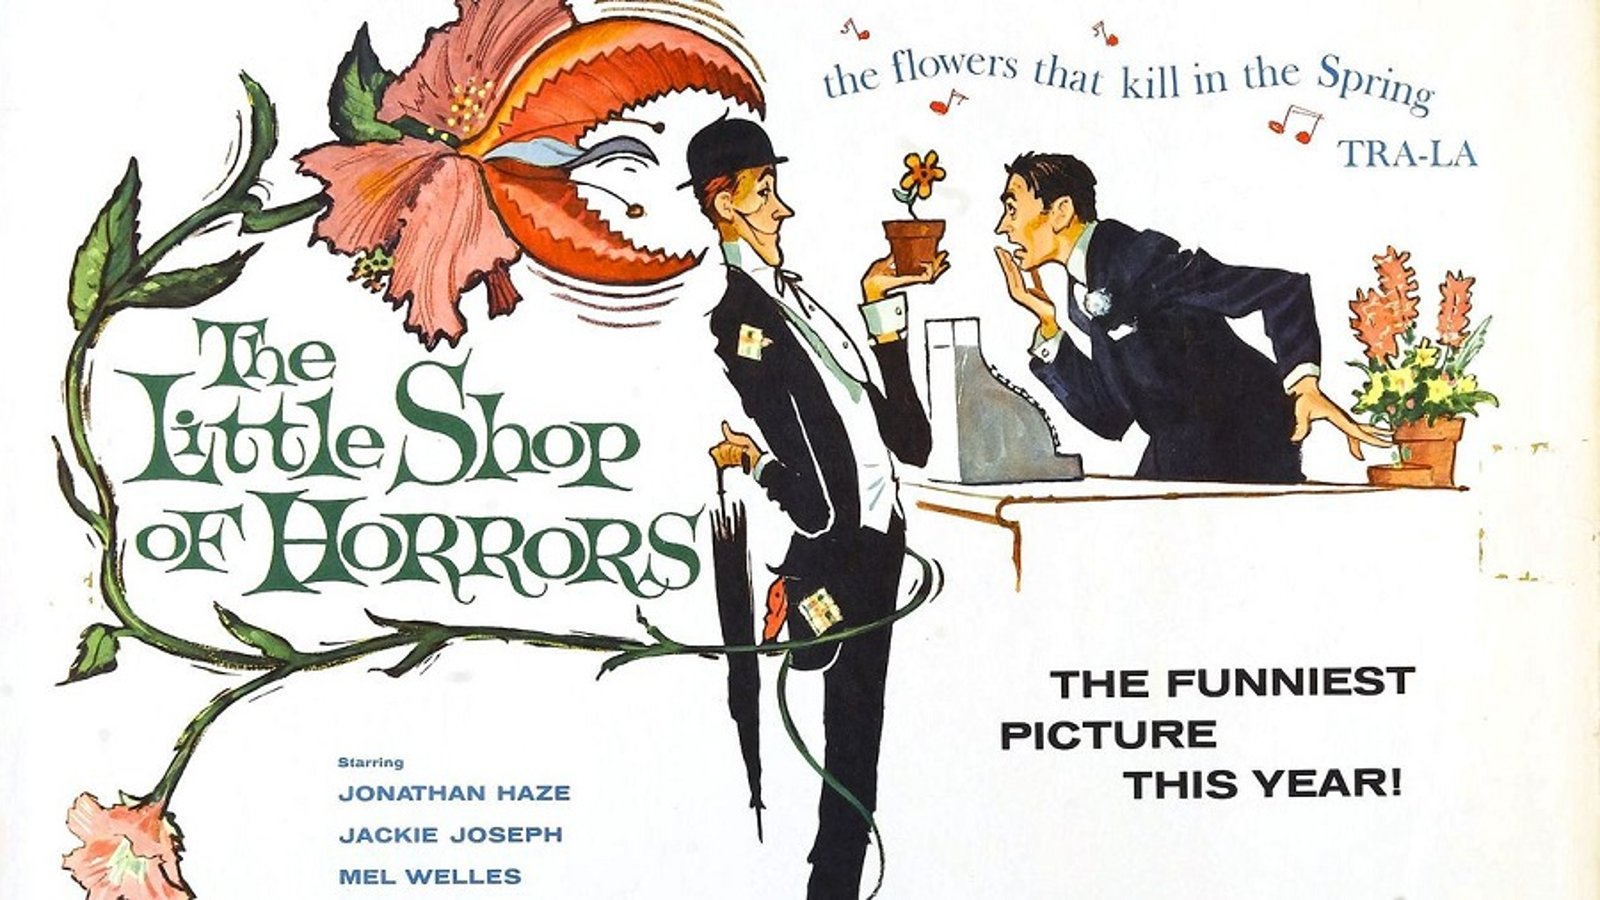 The Little Shop of Horrors